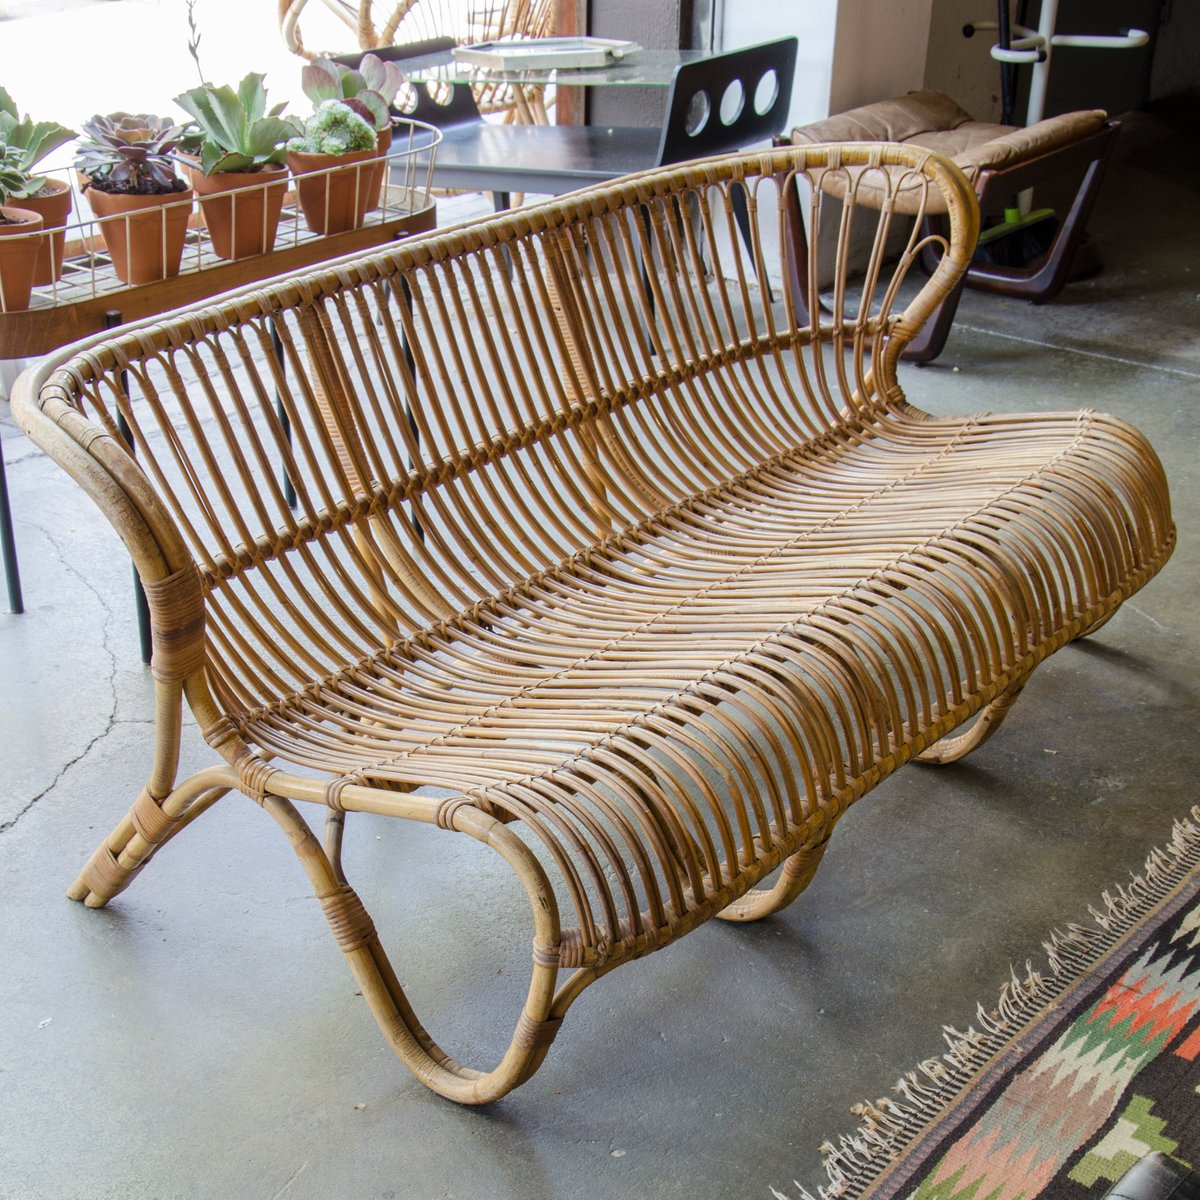 Used Cane Sofa For Sale In Bangalore: Vintage Bamboo And Cane Sofa By Viggo Boesen Fox For E.V.A